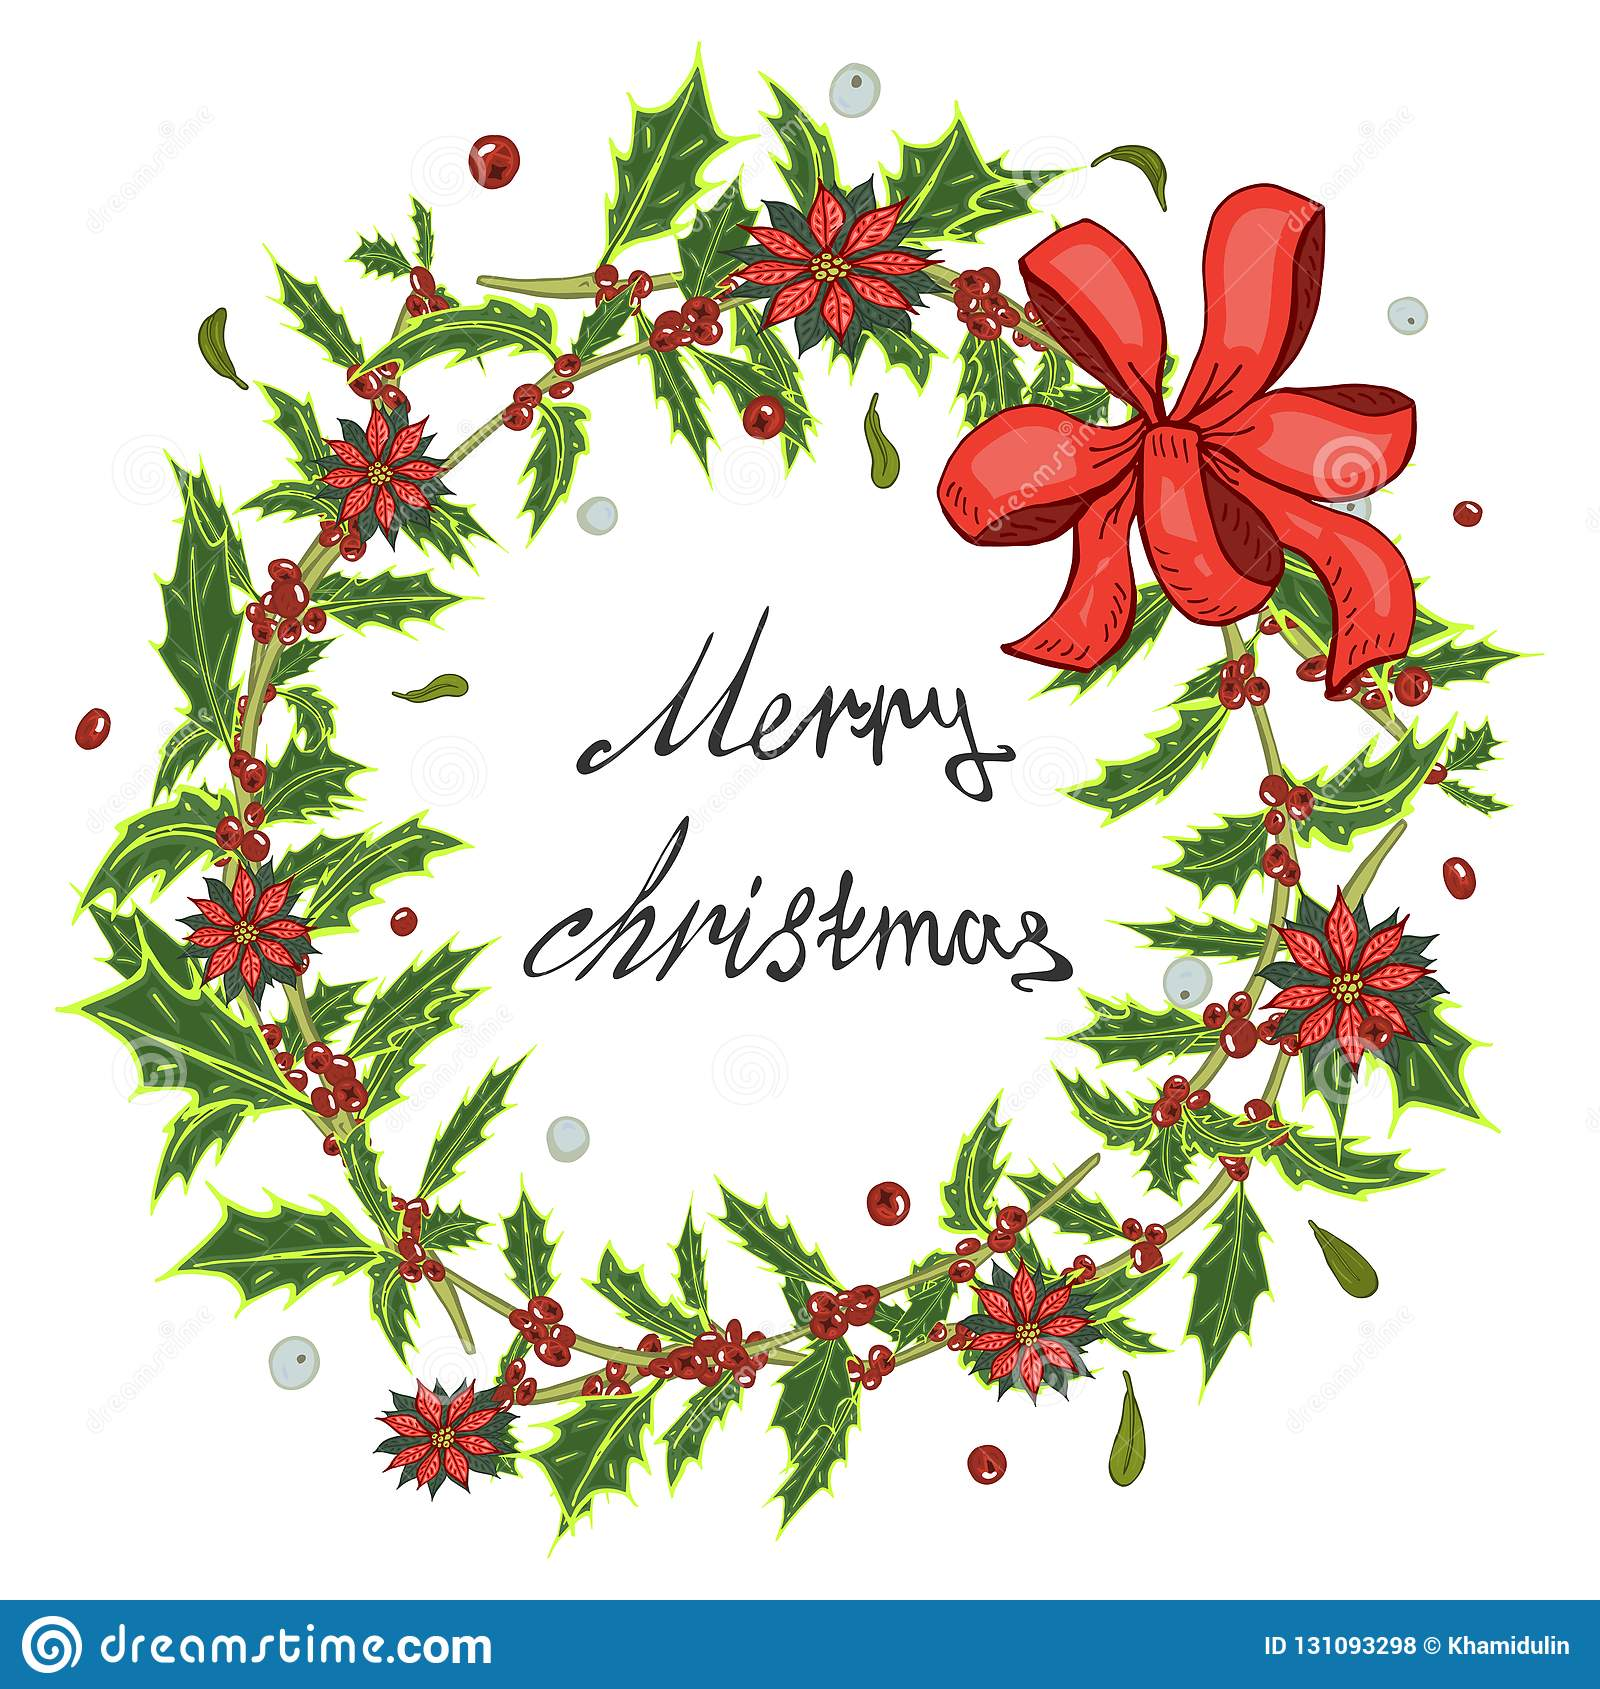 Christmas card, a banner with a wreath of red flowers poinsettia, holly leaves.